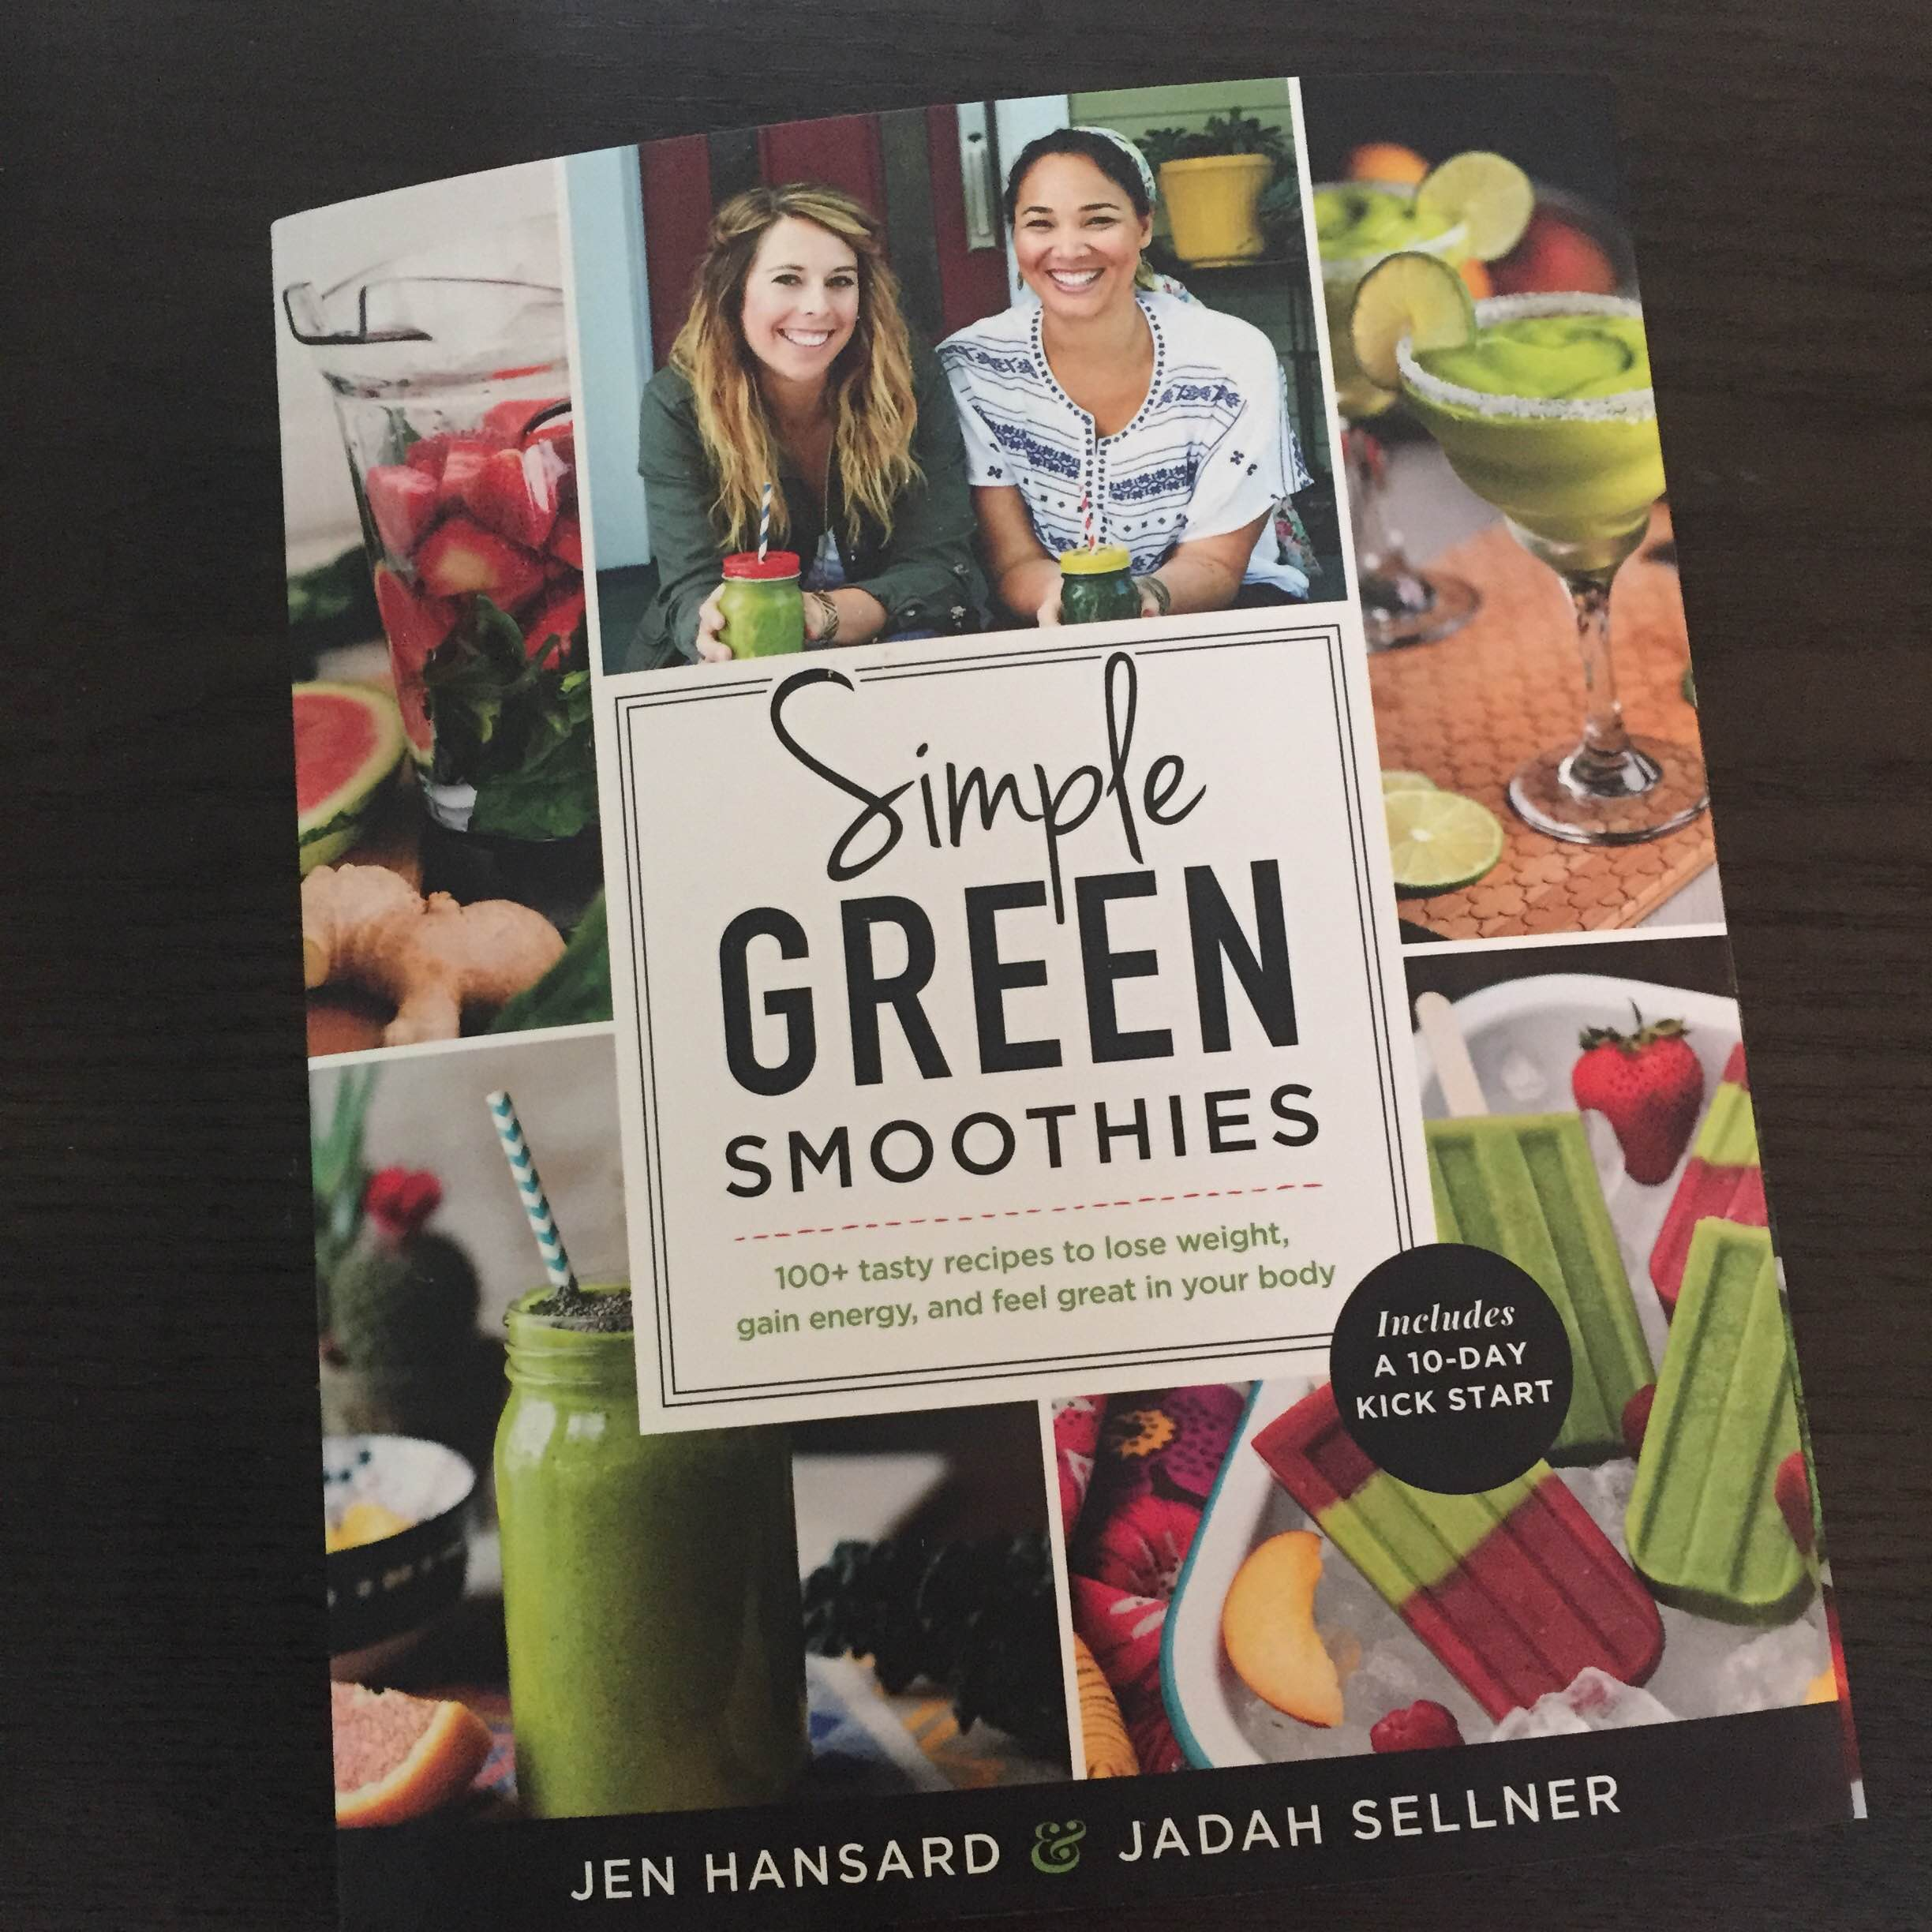 Simple Green Smoothies Cookbook